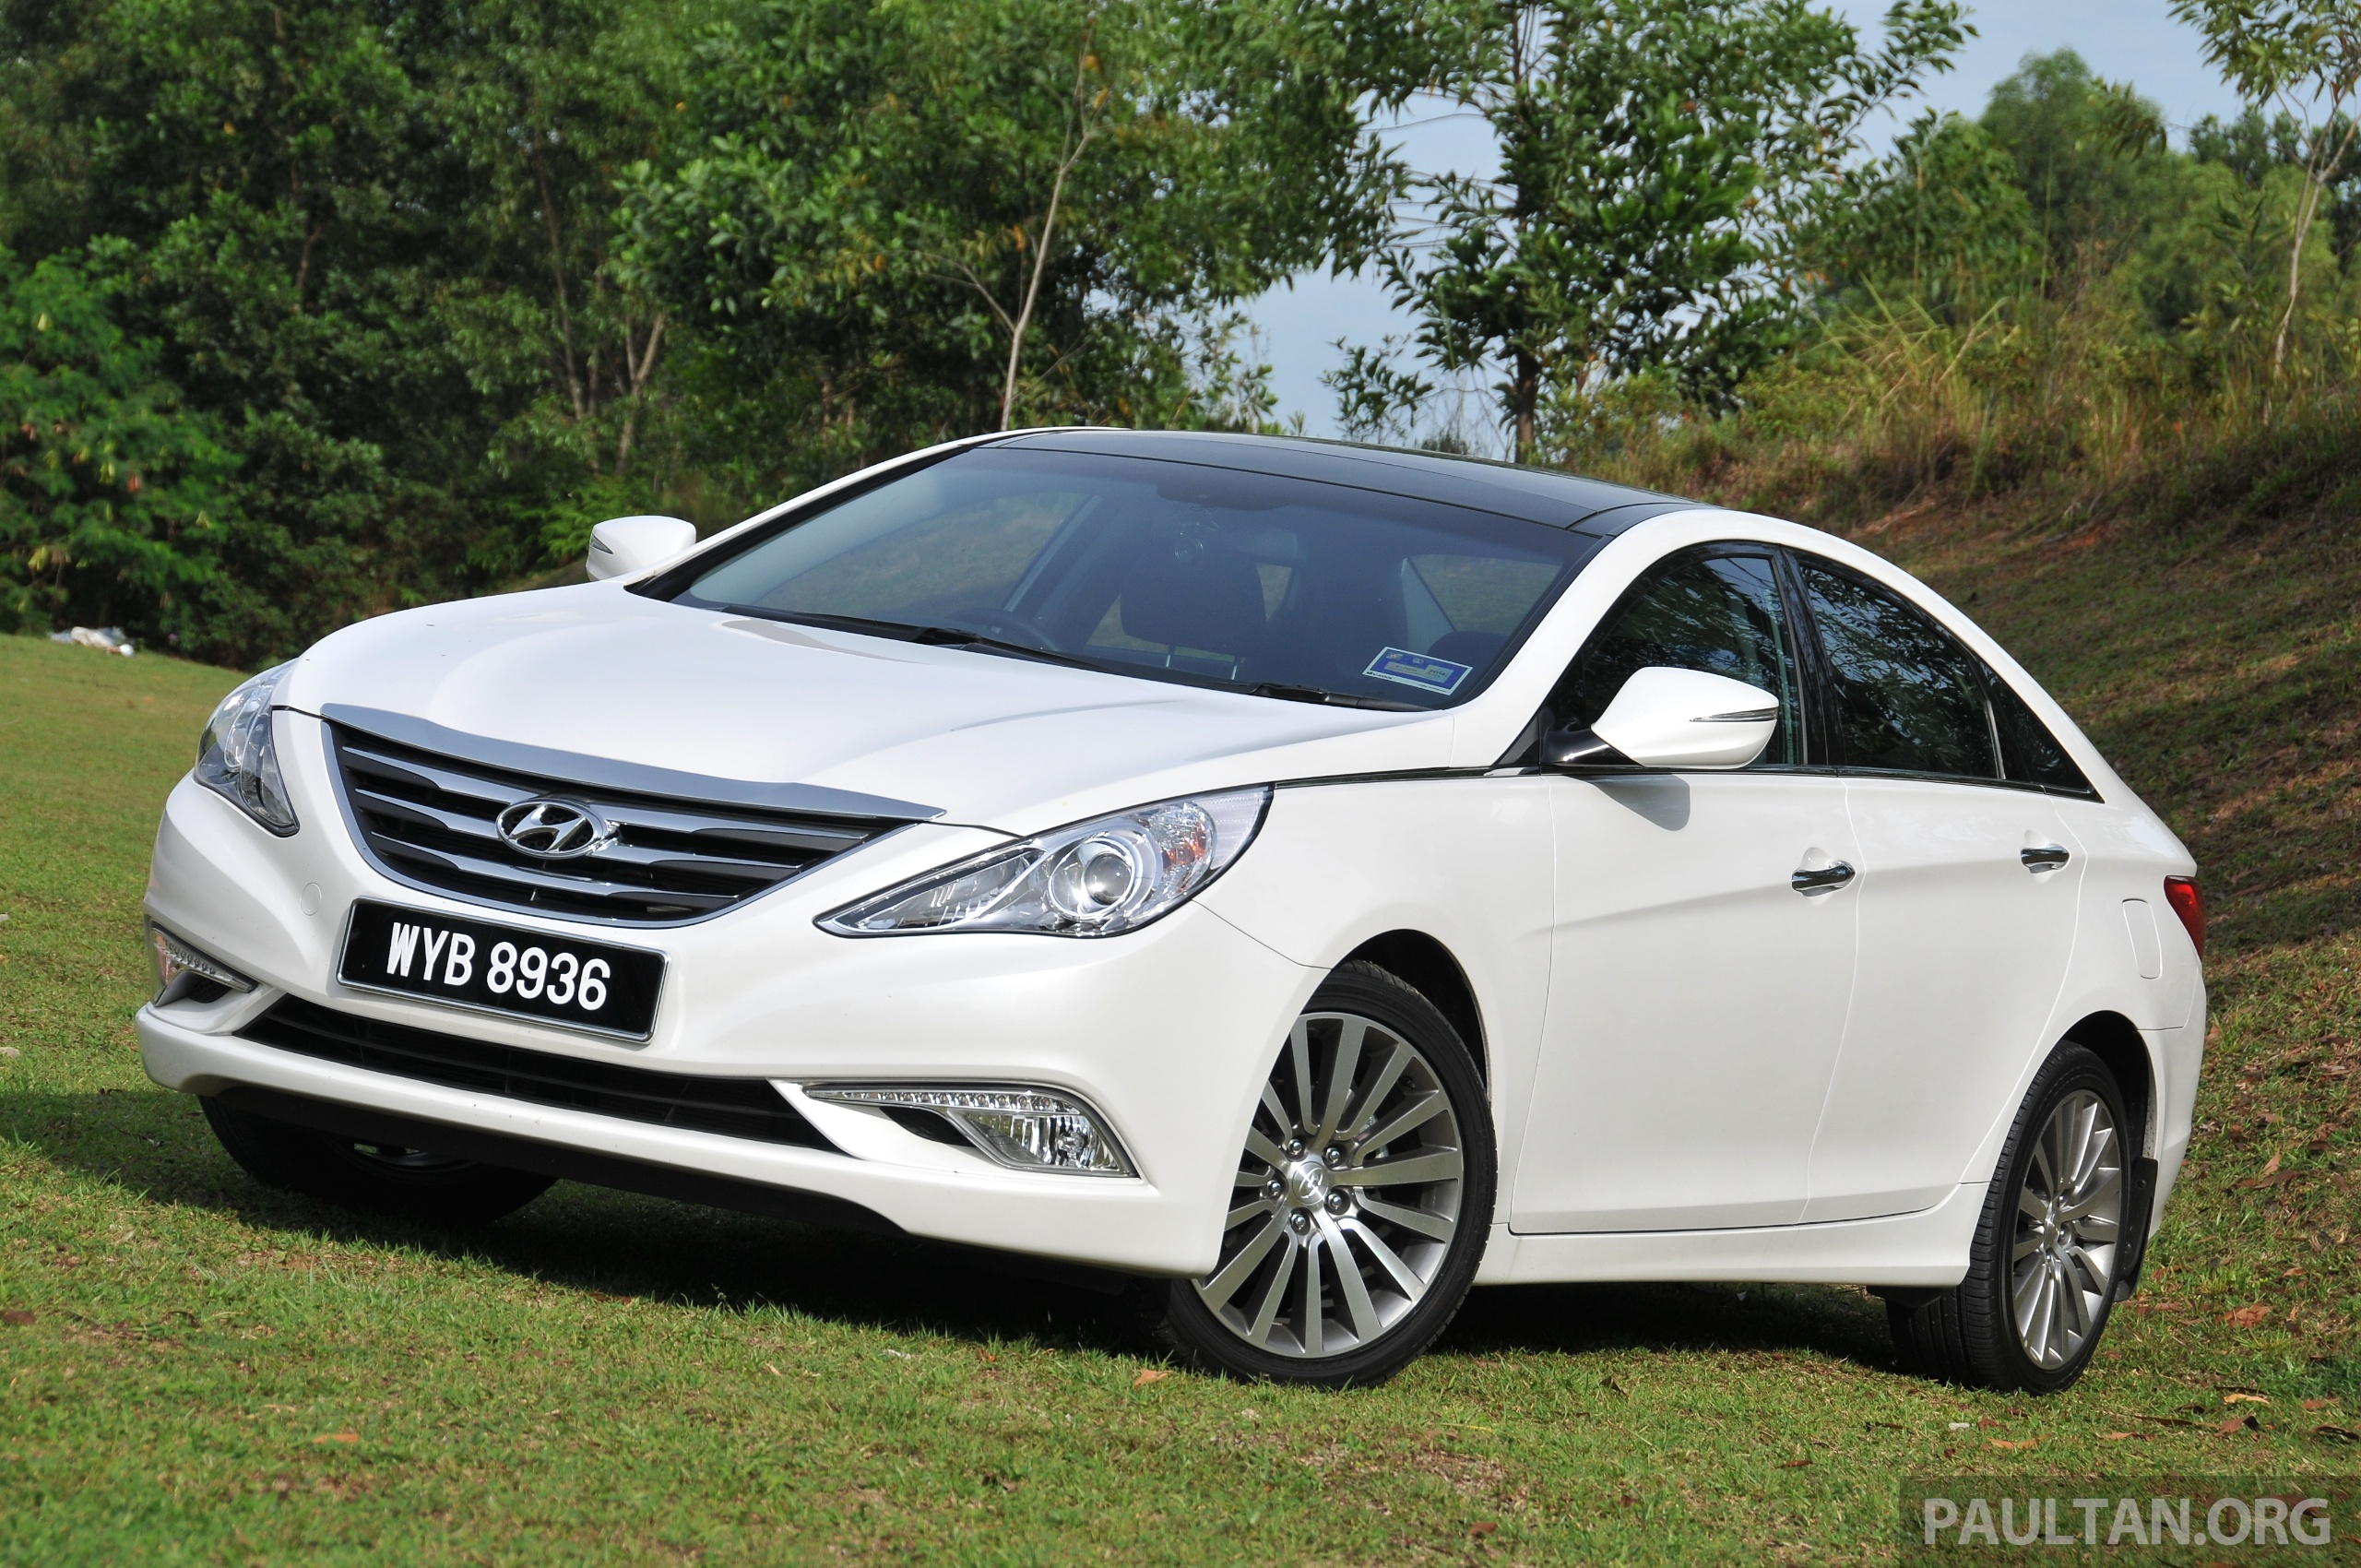 2015 Hyundai Sonata Shows Its New Face In Leaked Pix Image